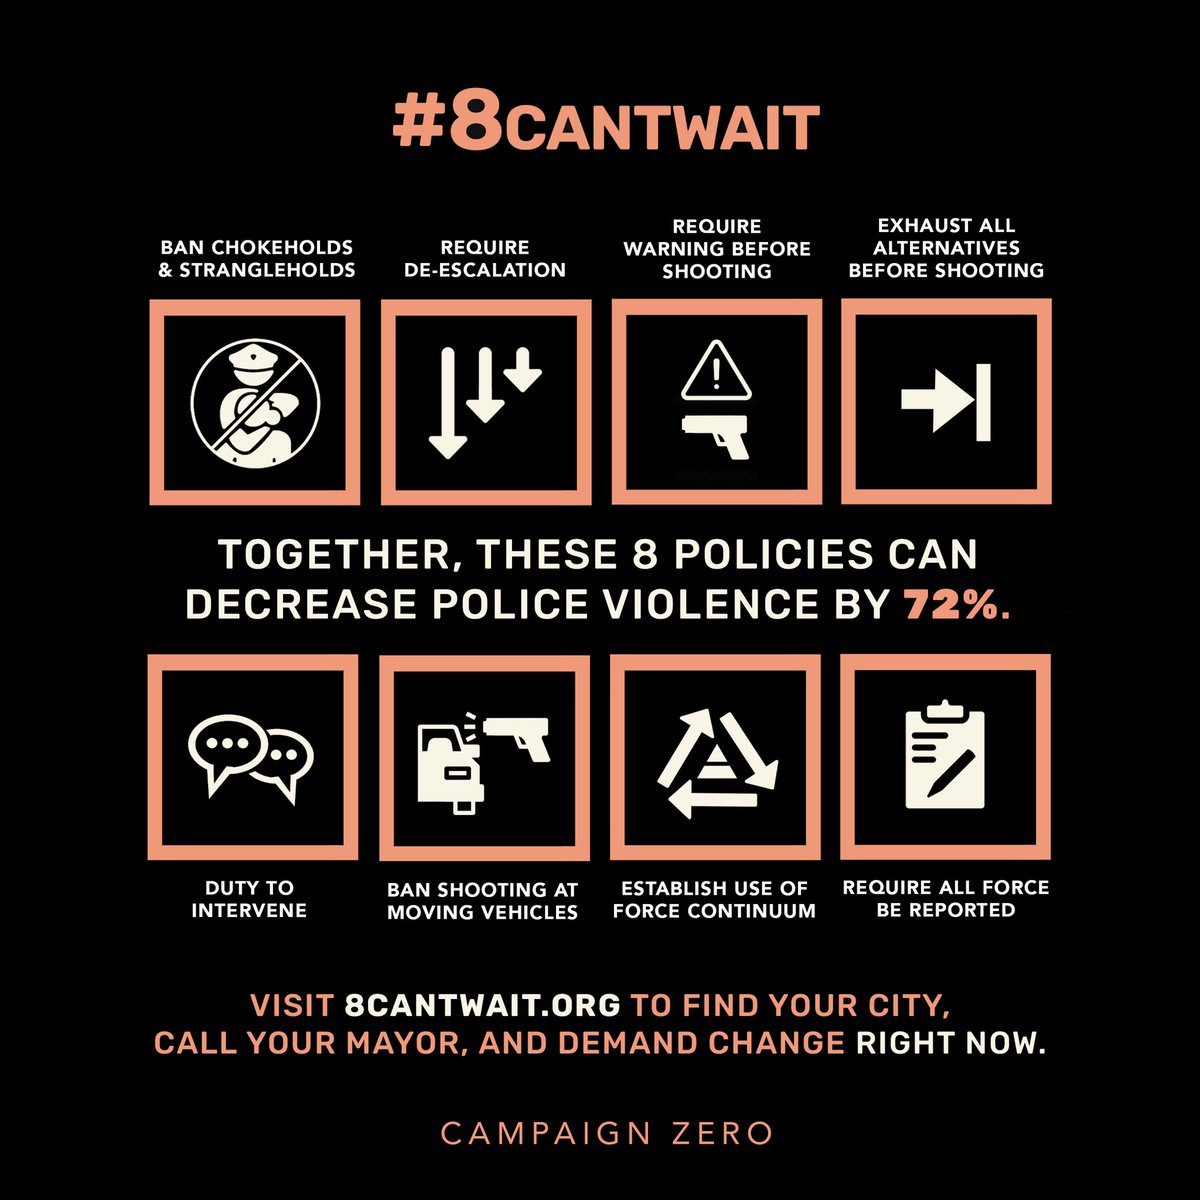 Today, we launched #8cantwait. Together, these 8 use of force policies decrease police violence by up to 70%. No act of Congress or executive order needed. Mayors just need to do the right thing. Our lives are at stake. Visit 8cantwait.org to demand action NOW ❤️✊🏾